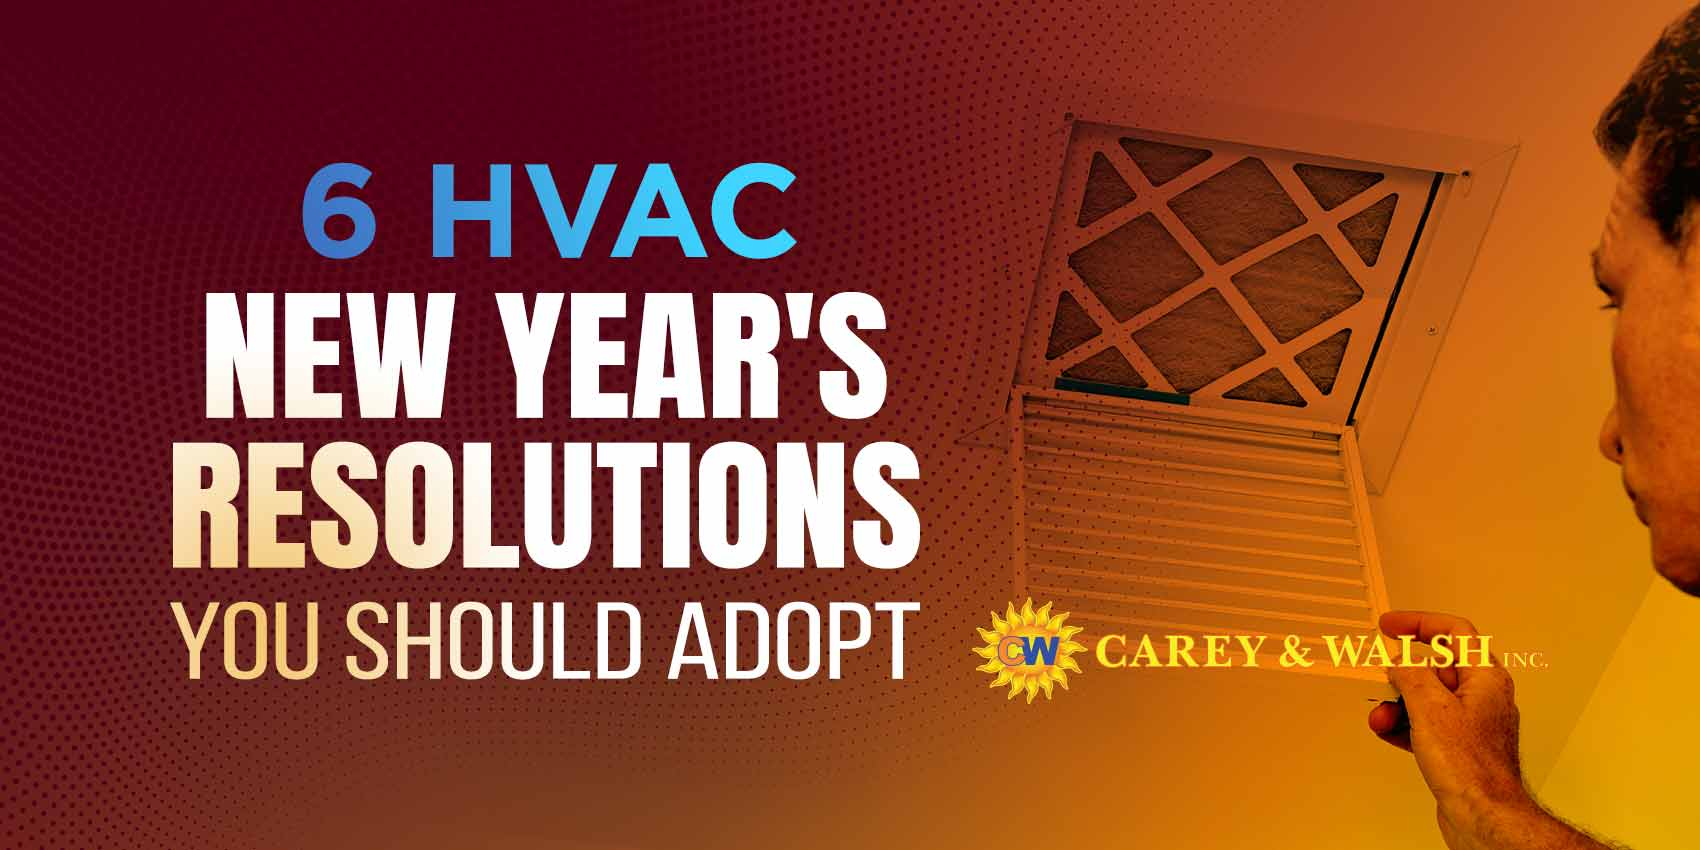 6 HVAC New Year's Resolutions You Should Adopt